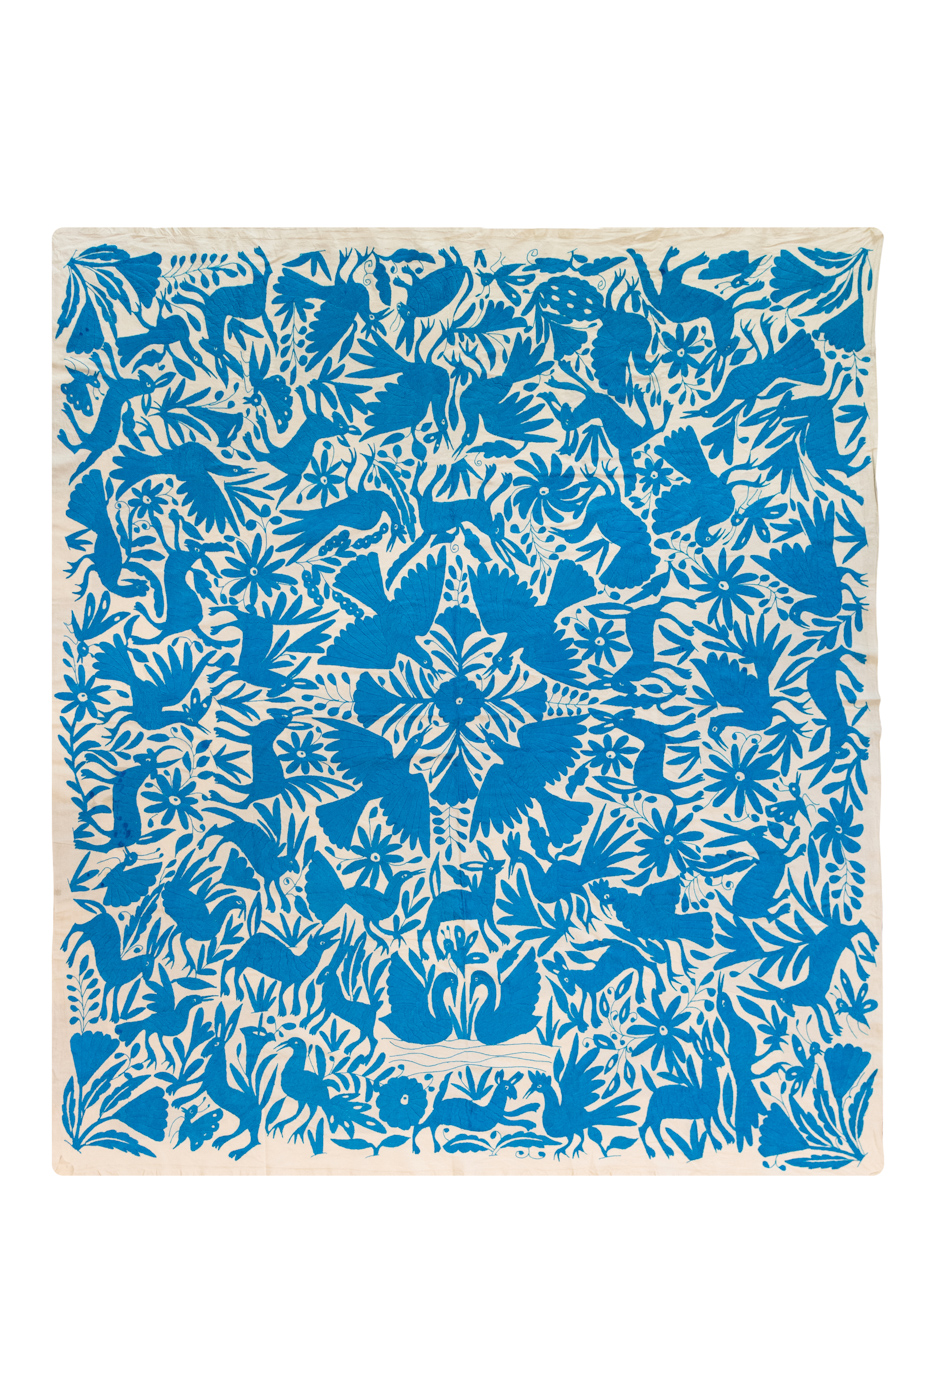 Mexican decorative fabric Otomi blue birds